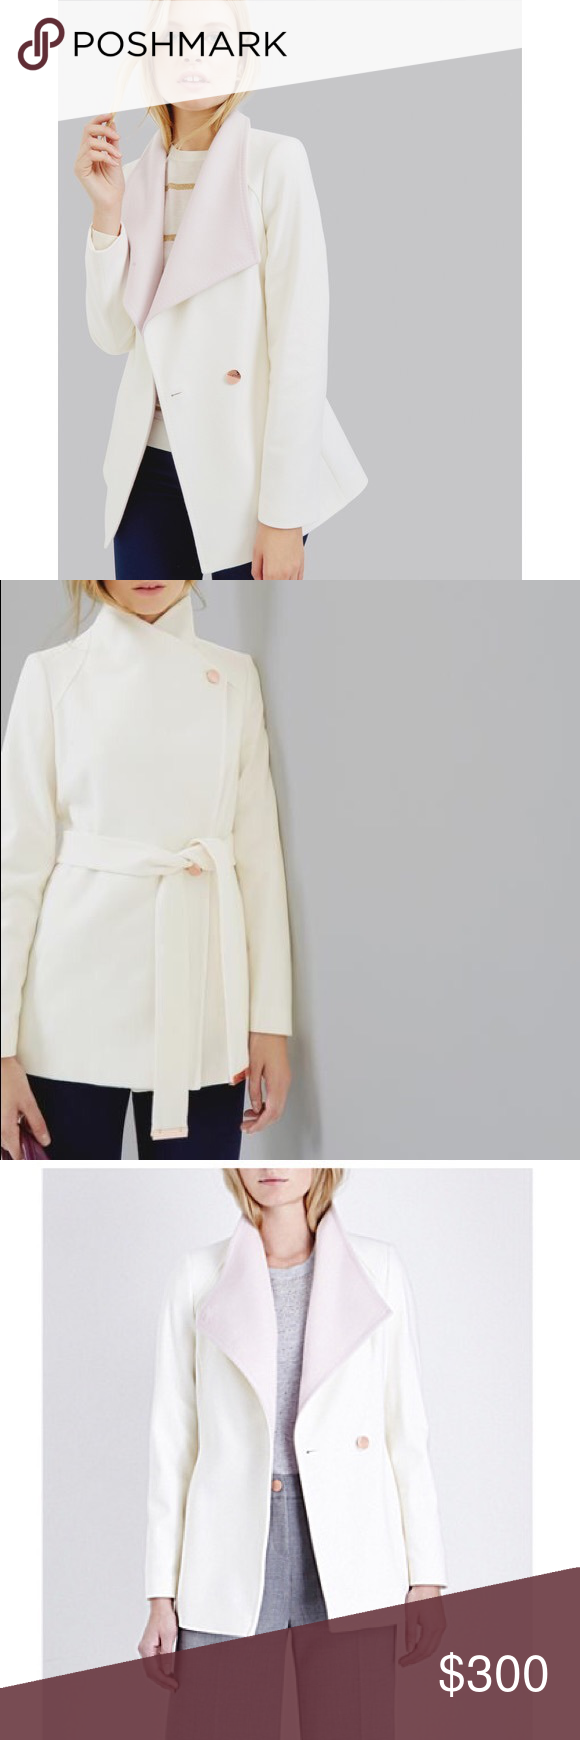 a6028d8944be2 NWT Ted Baker Elika short wrap coat Purchased from Bloomingdales ...